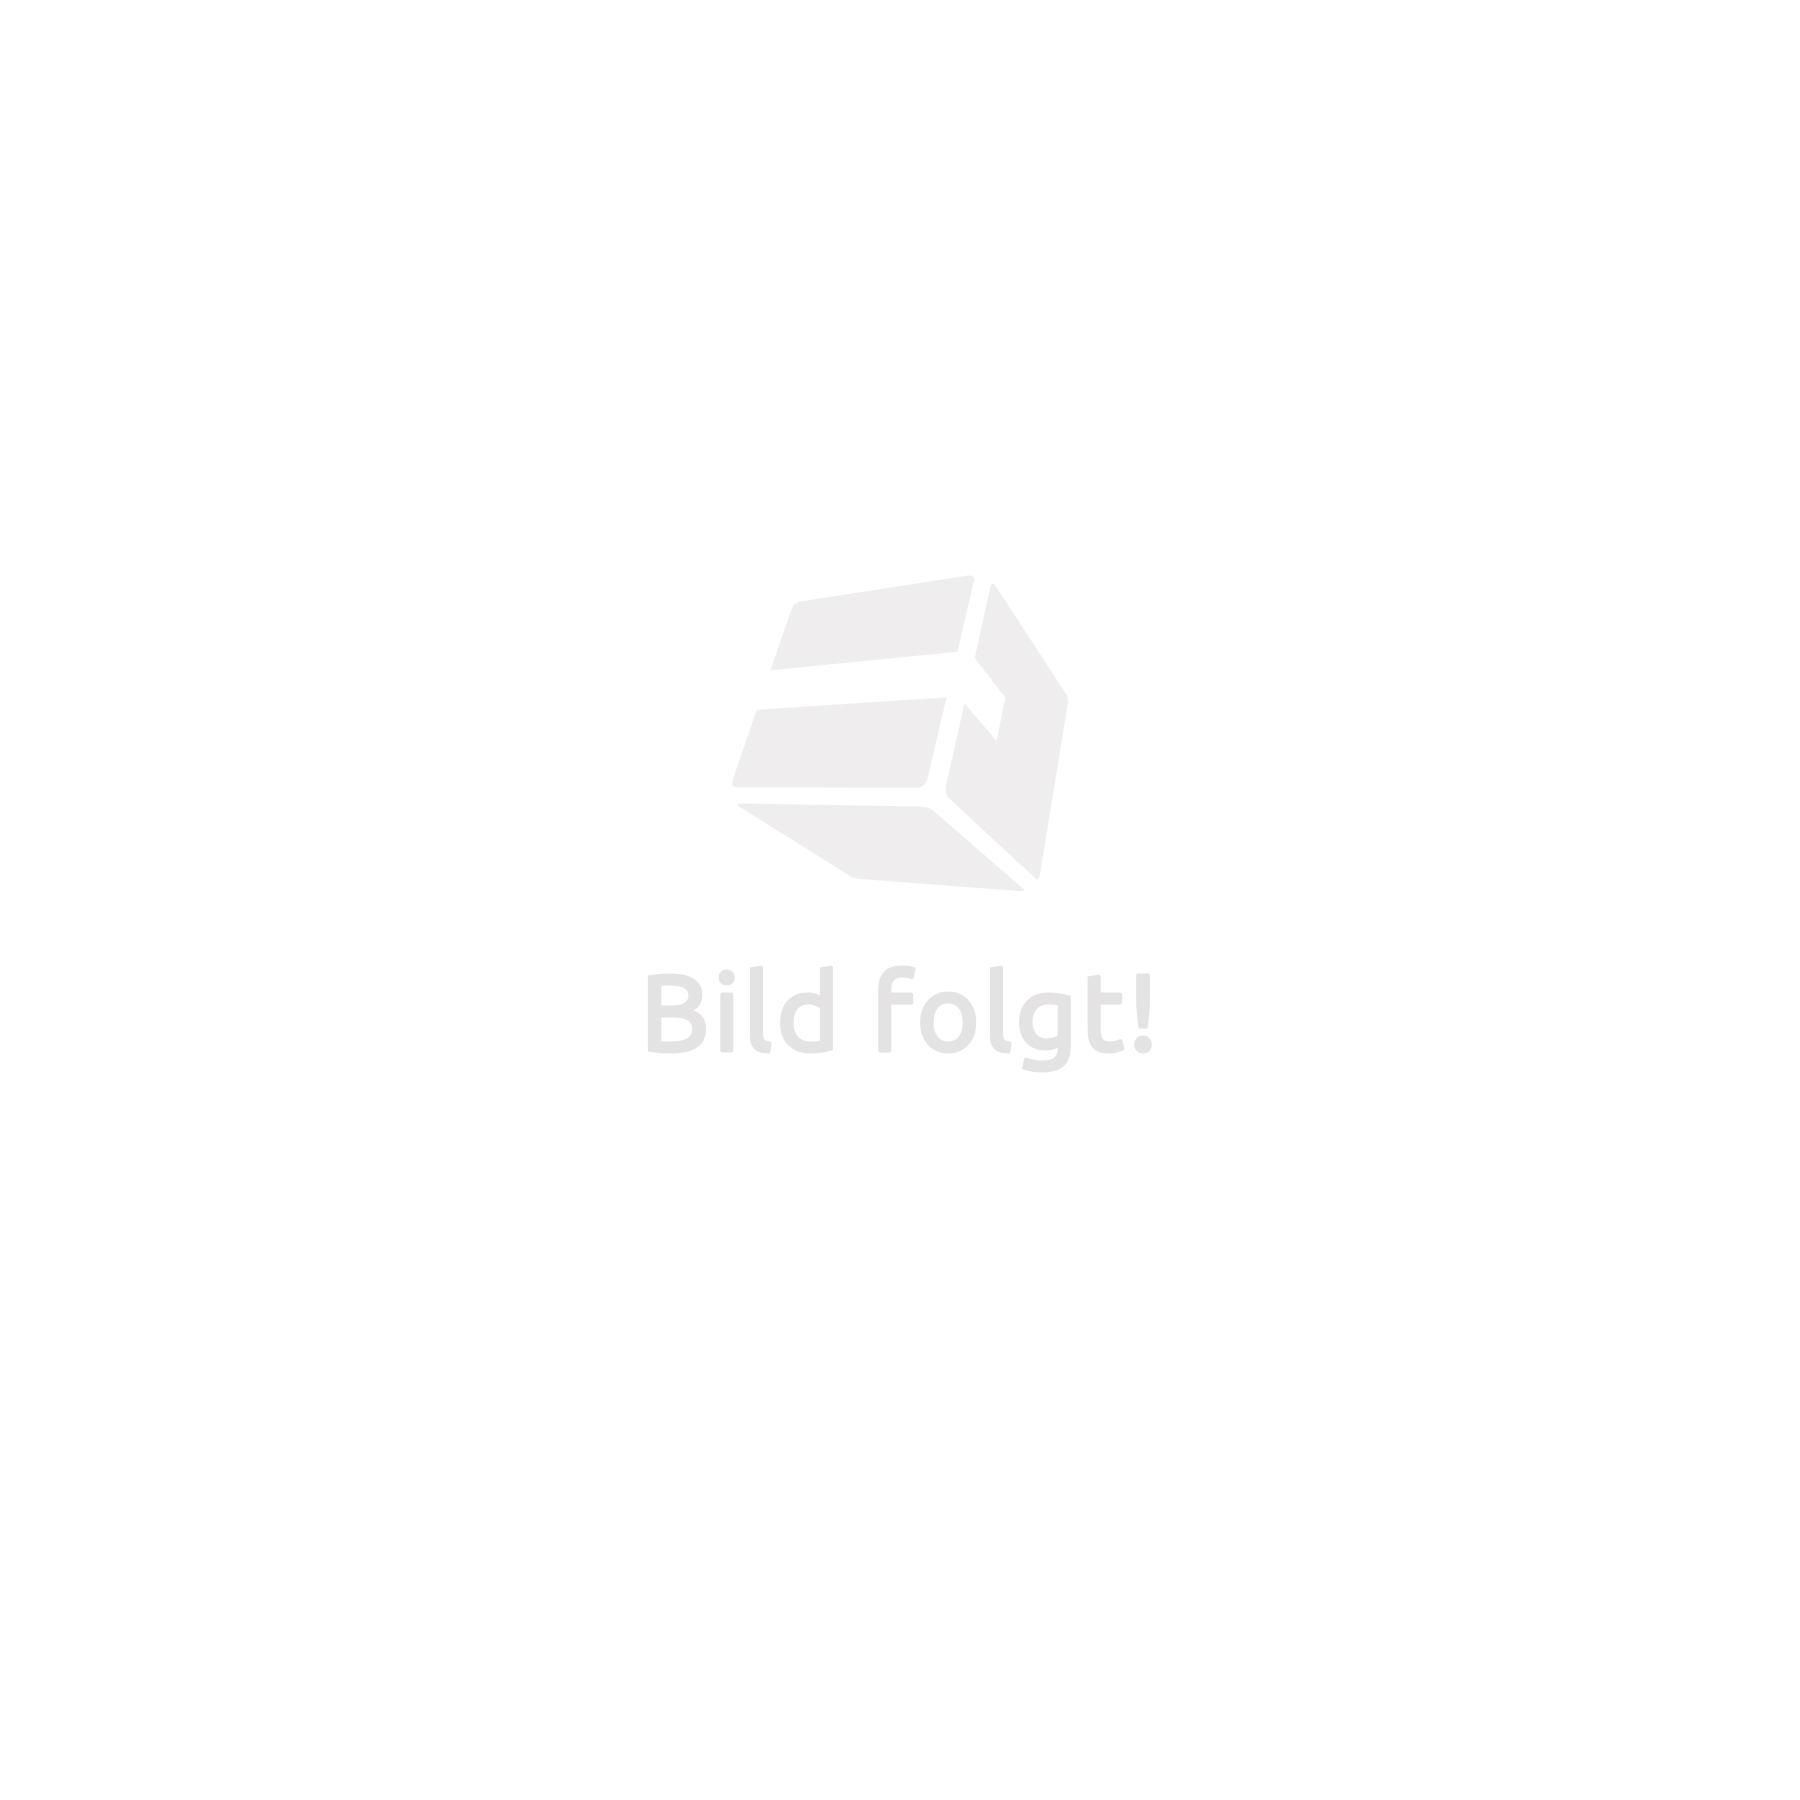 Floating shelves with 3 compartments model 1